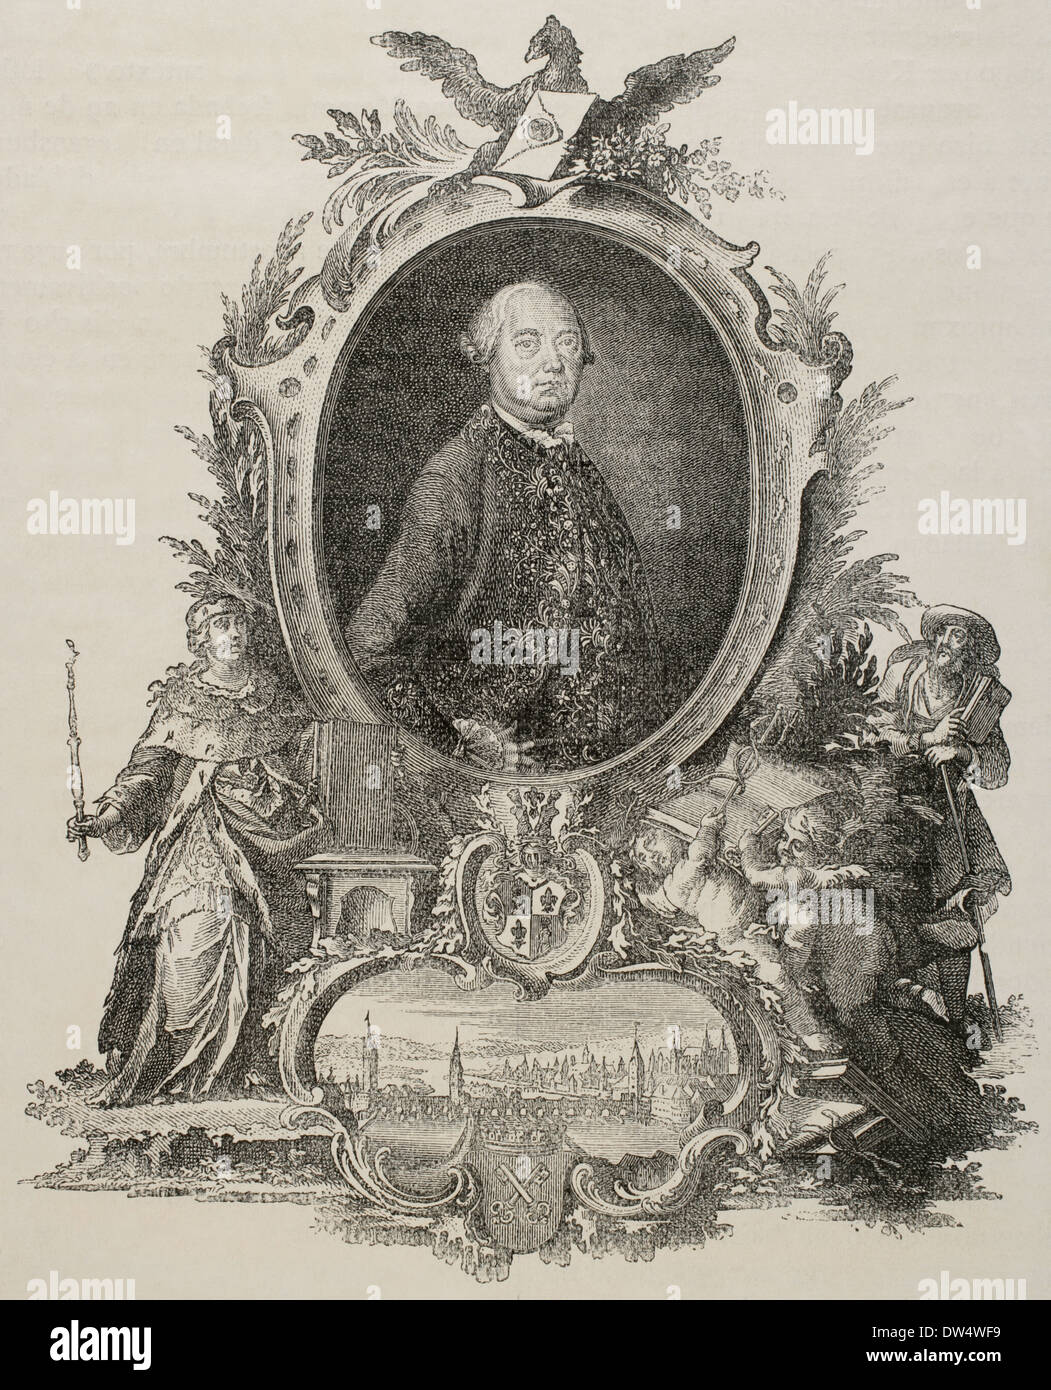 Heinrich Christopher Liber (1707-1788). German politician. Engraving Universal History, 1885. - Stock Image